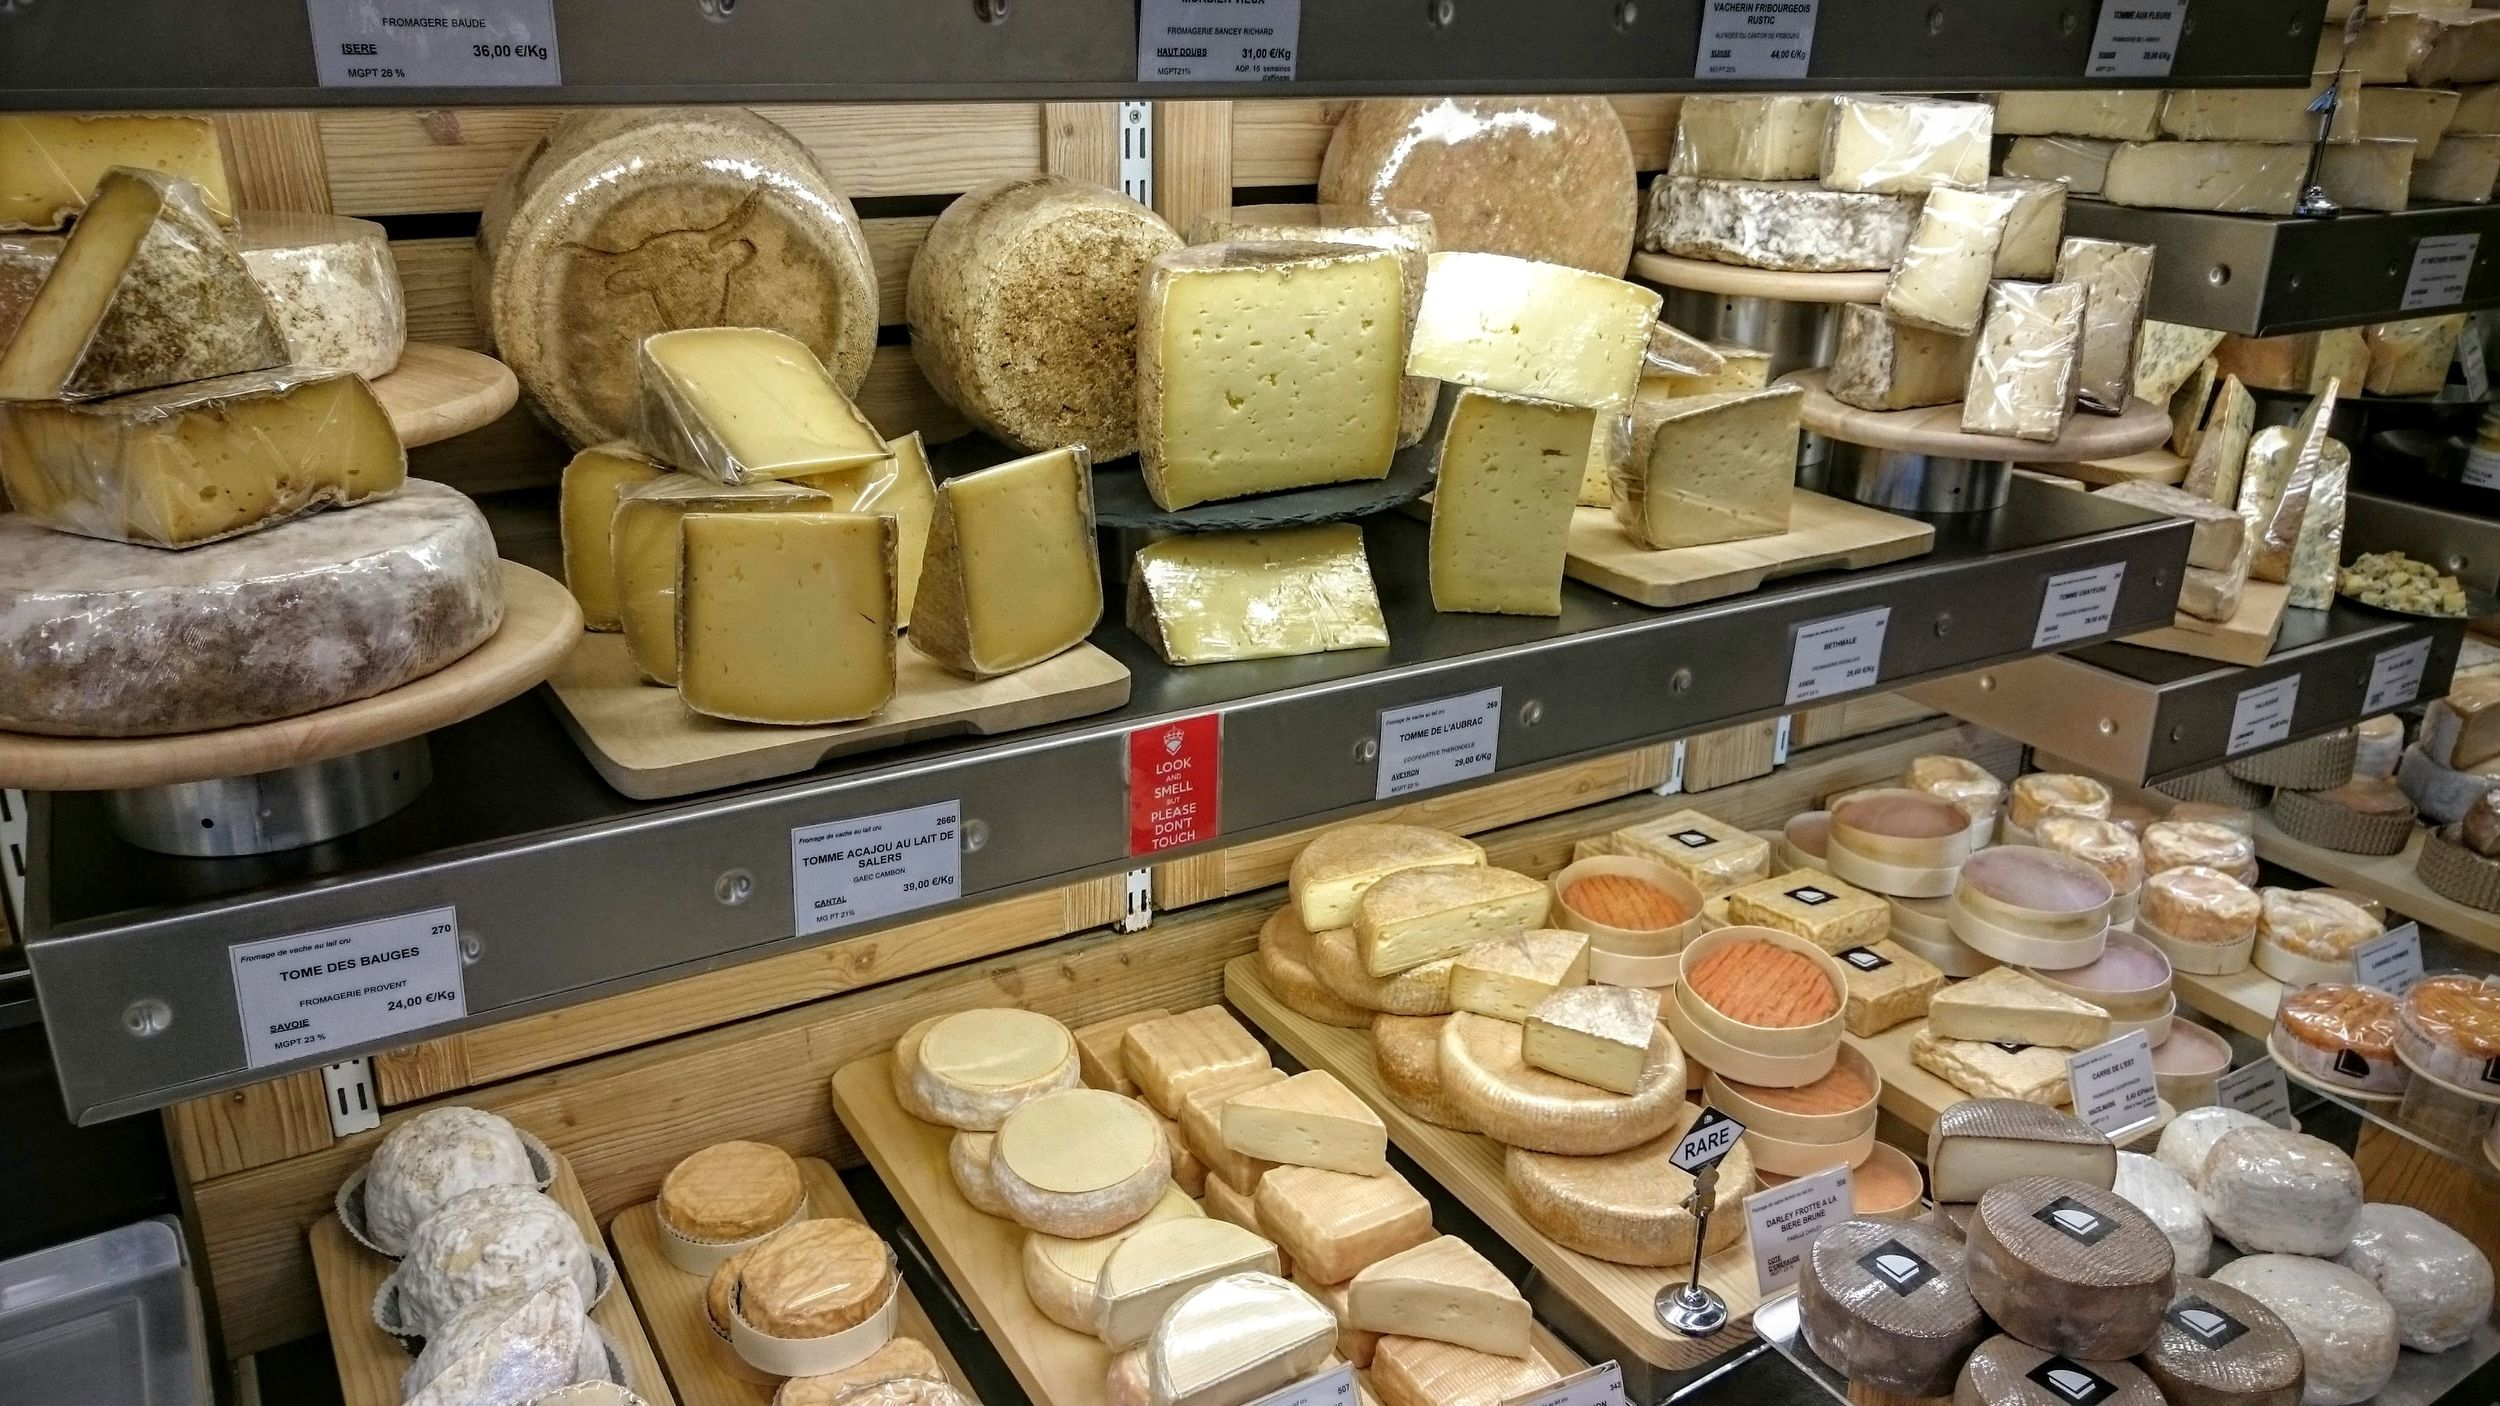 Tommes on top (semi-hard cheeses), mix on the bottom including some from Burgundy (spot the Époisses?)